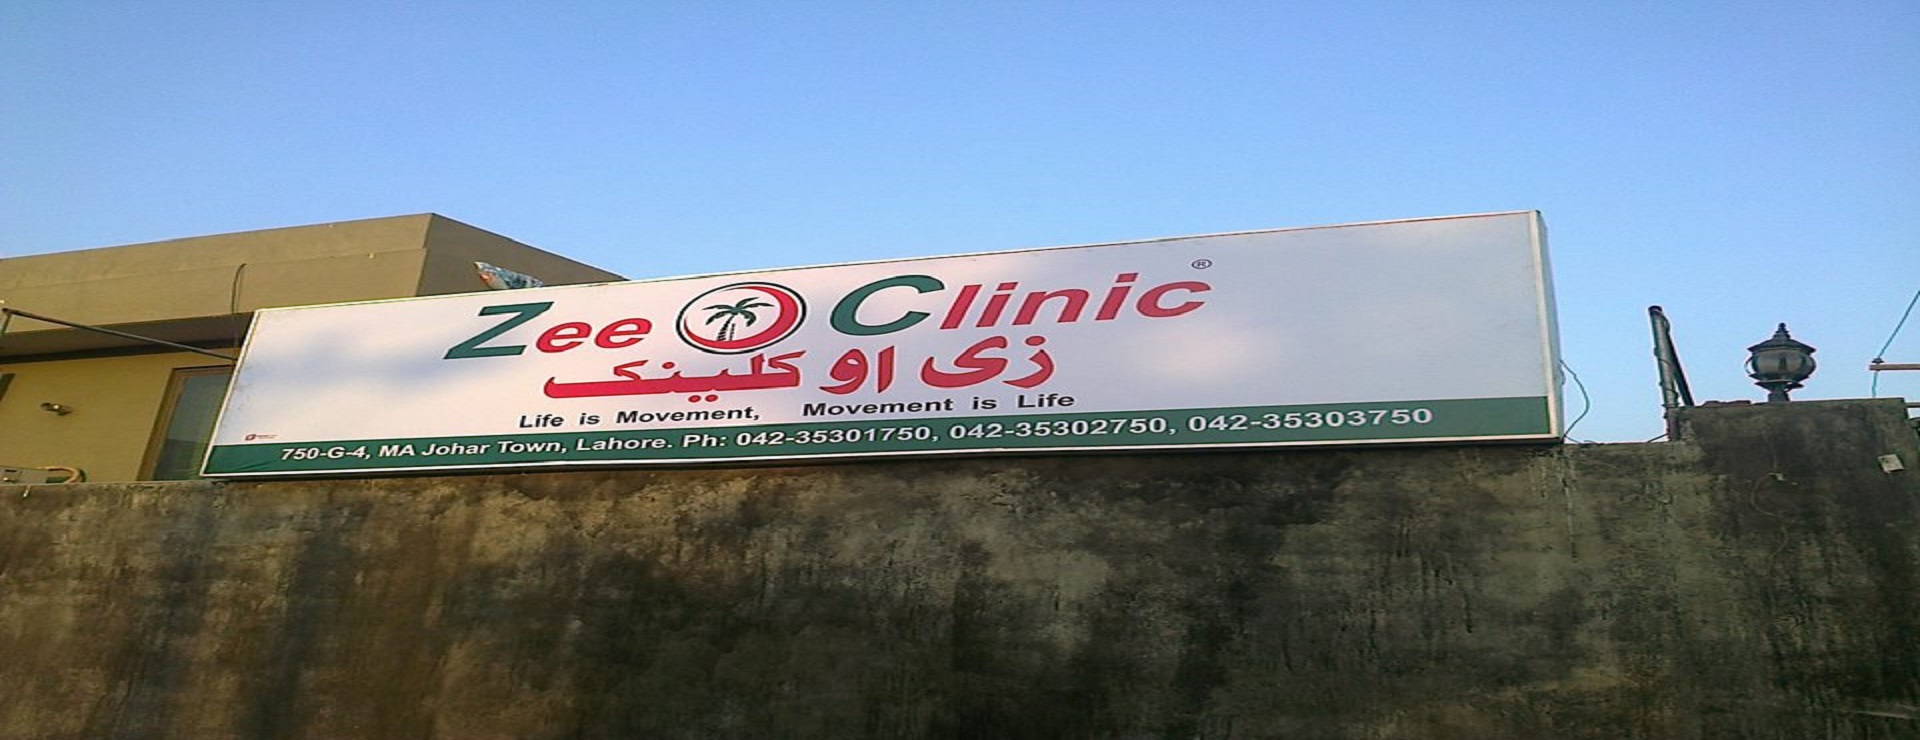 Zee o clinic front